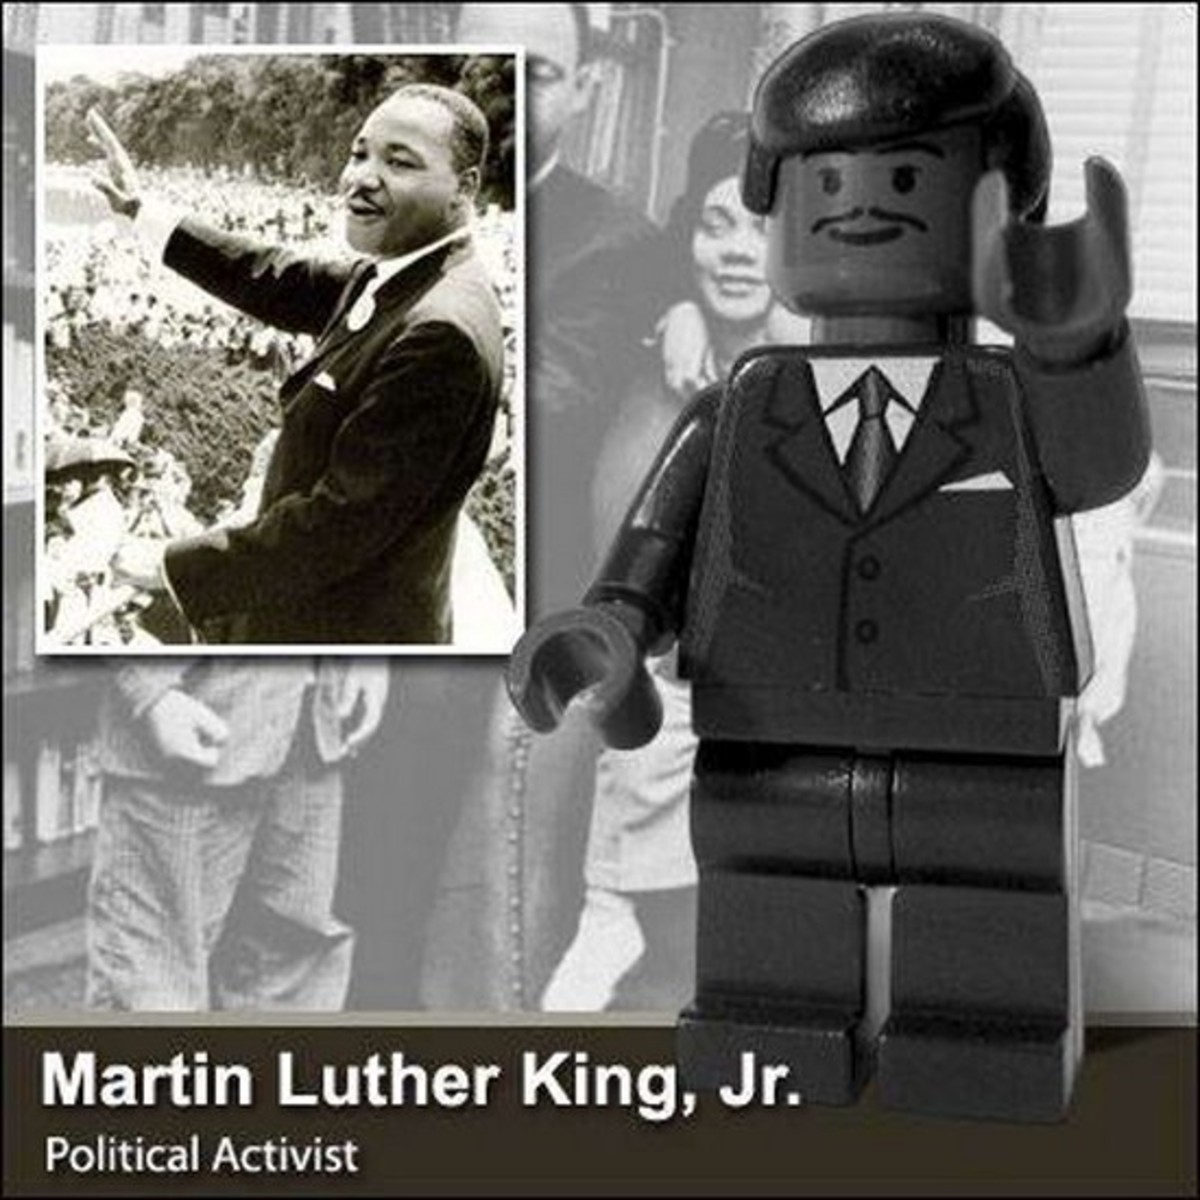 Martin Luther KIng Jr. in Lego Photo